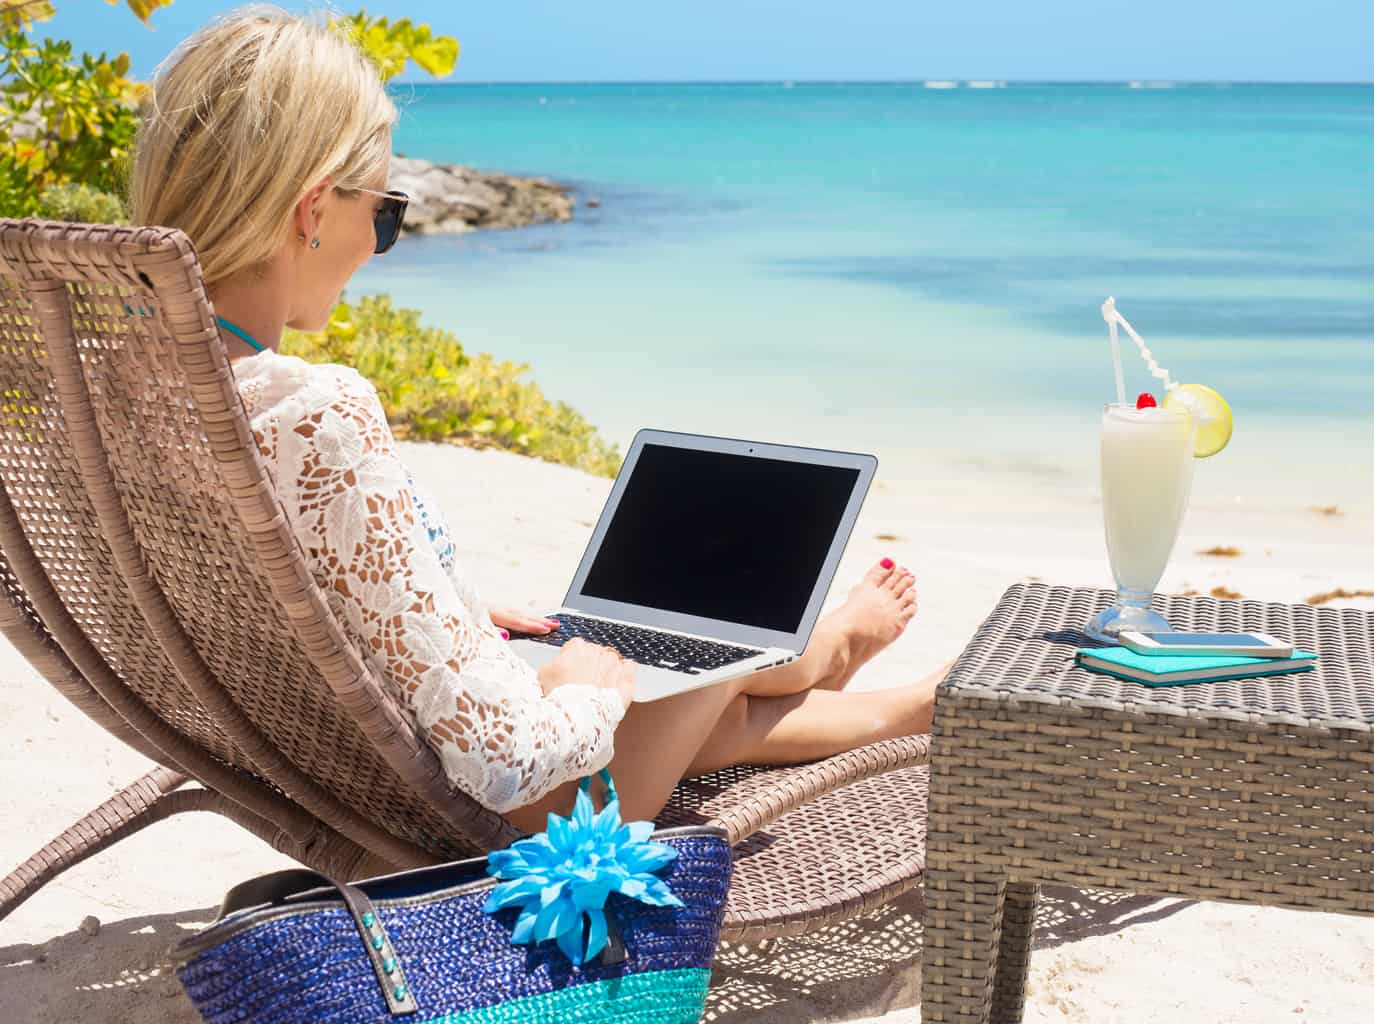 20 Best Jobs Where You Work Alone [Updated!]